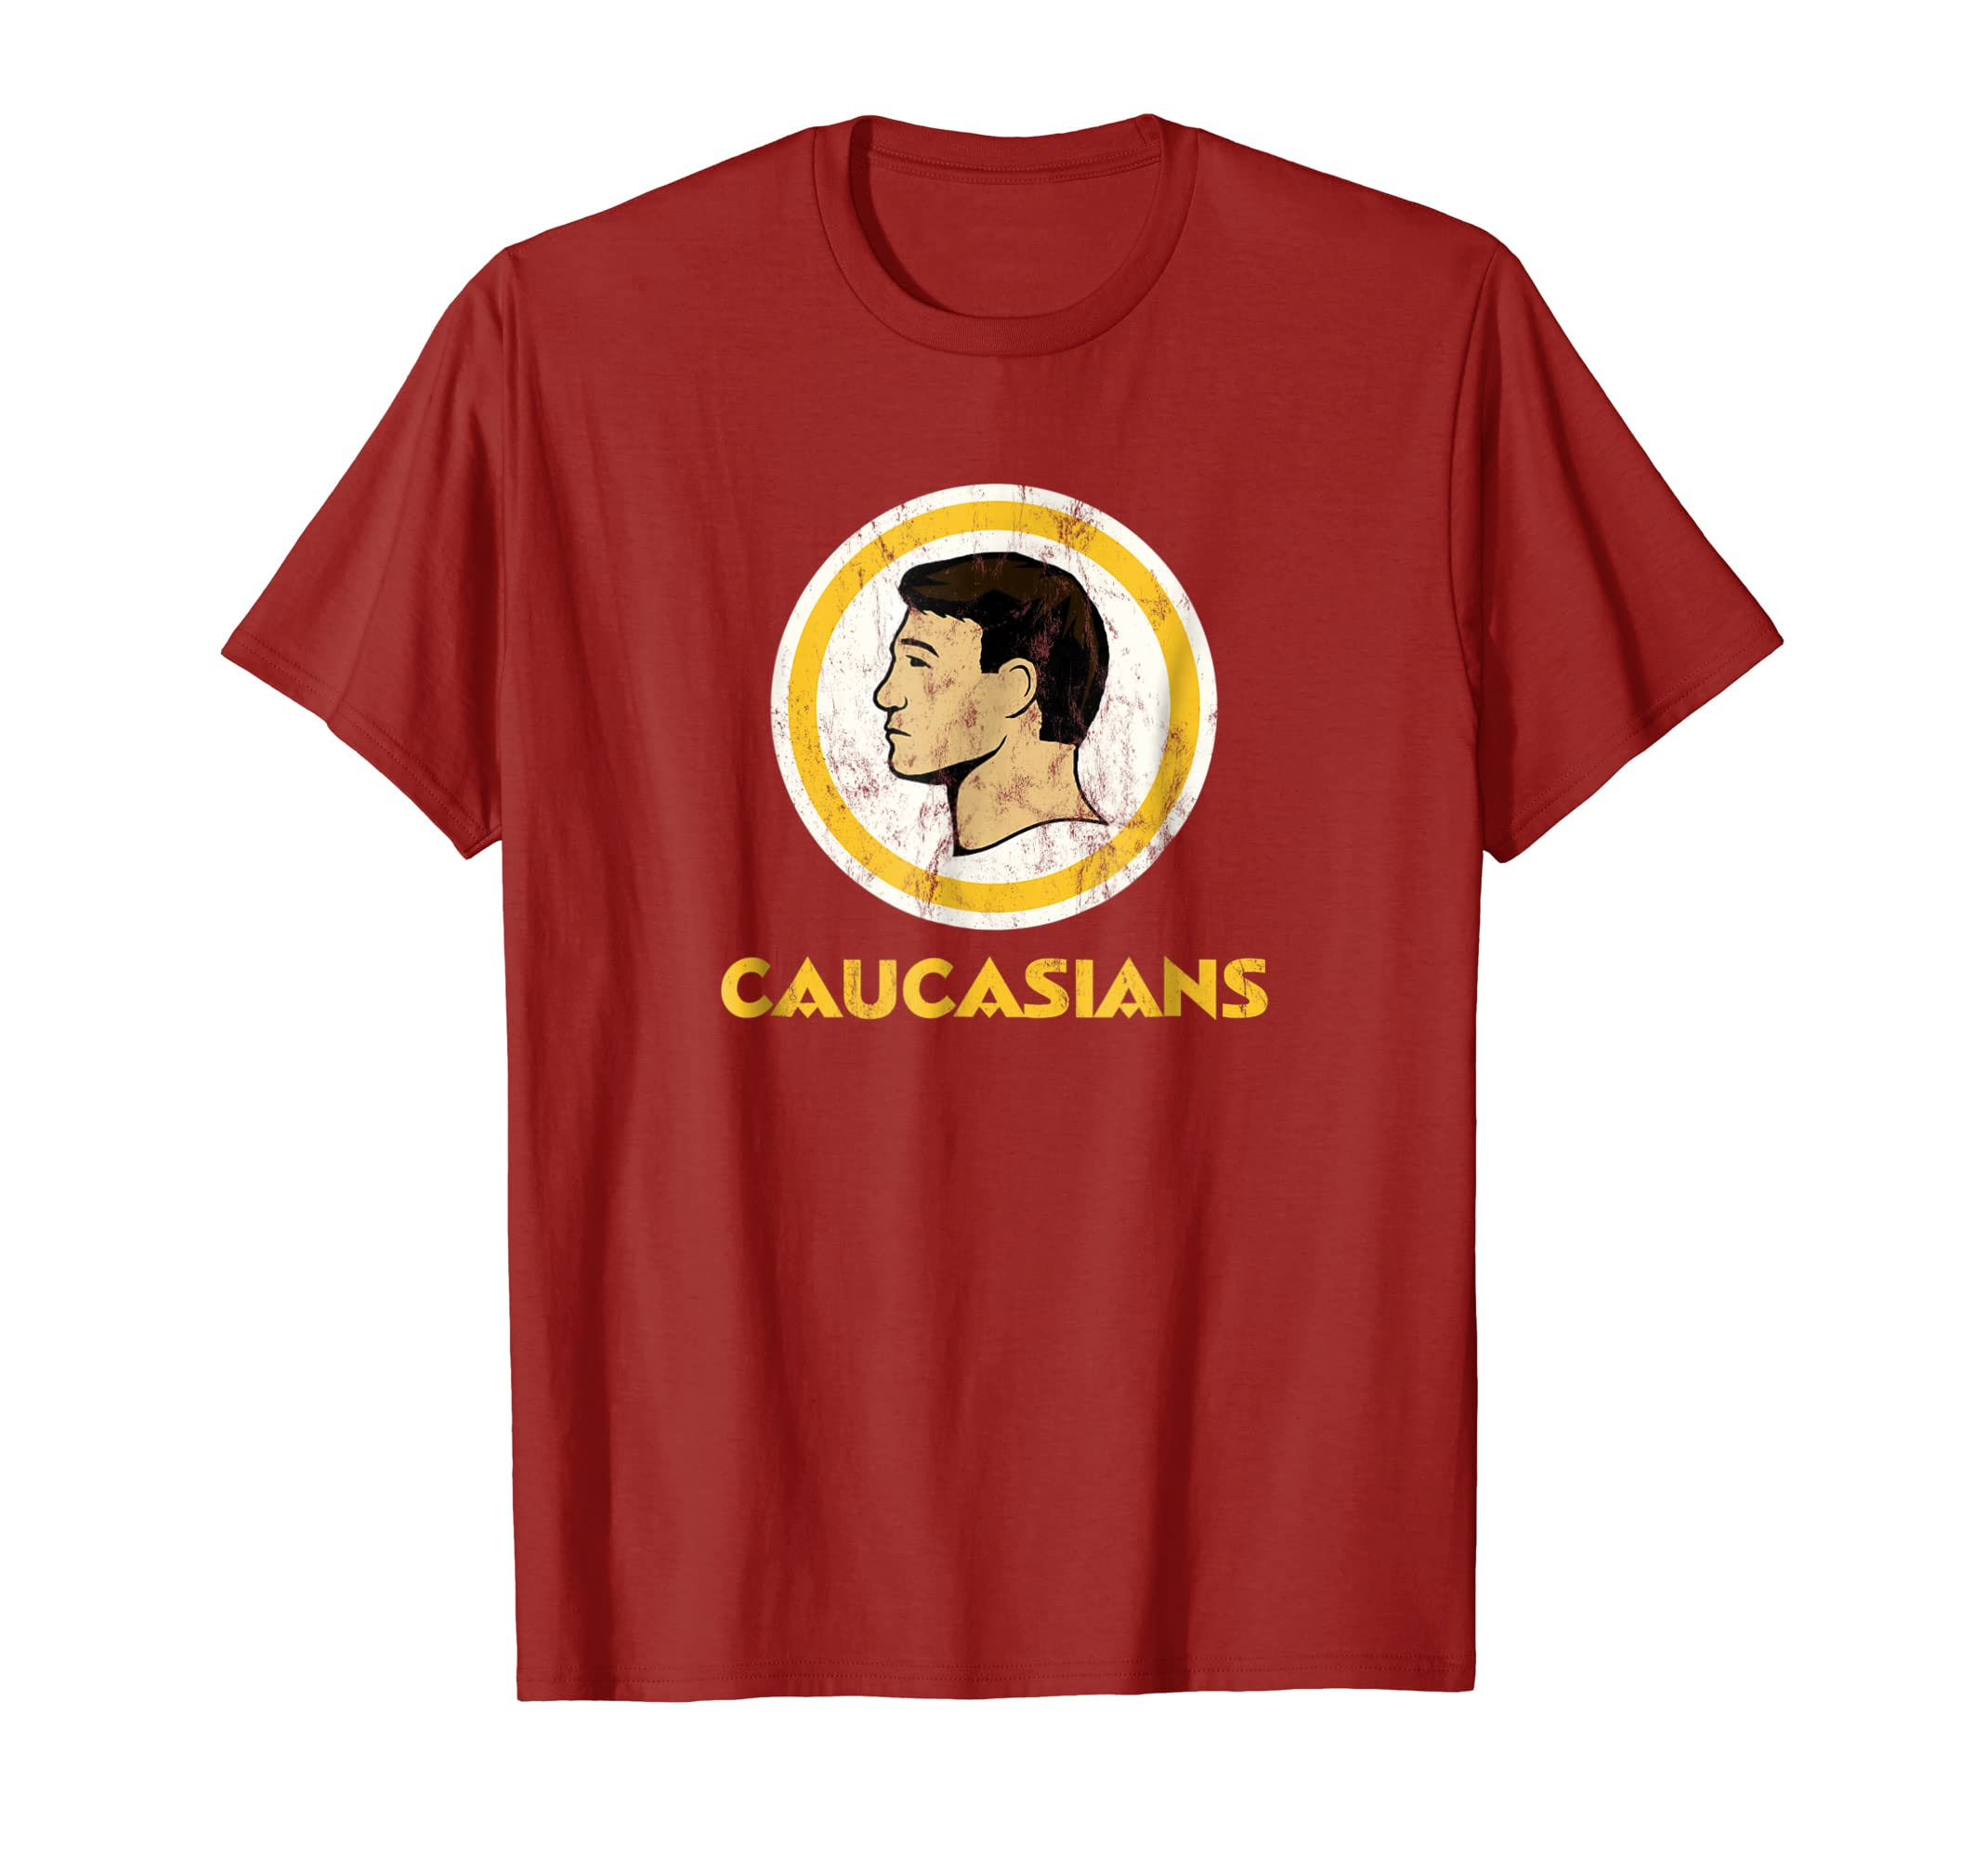 CAUCASIANS T-Shirt THE ORIGINAL-Yolotee